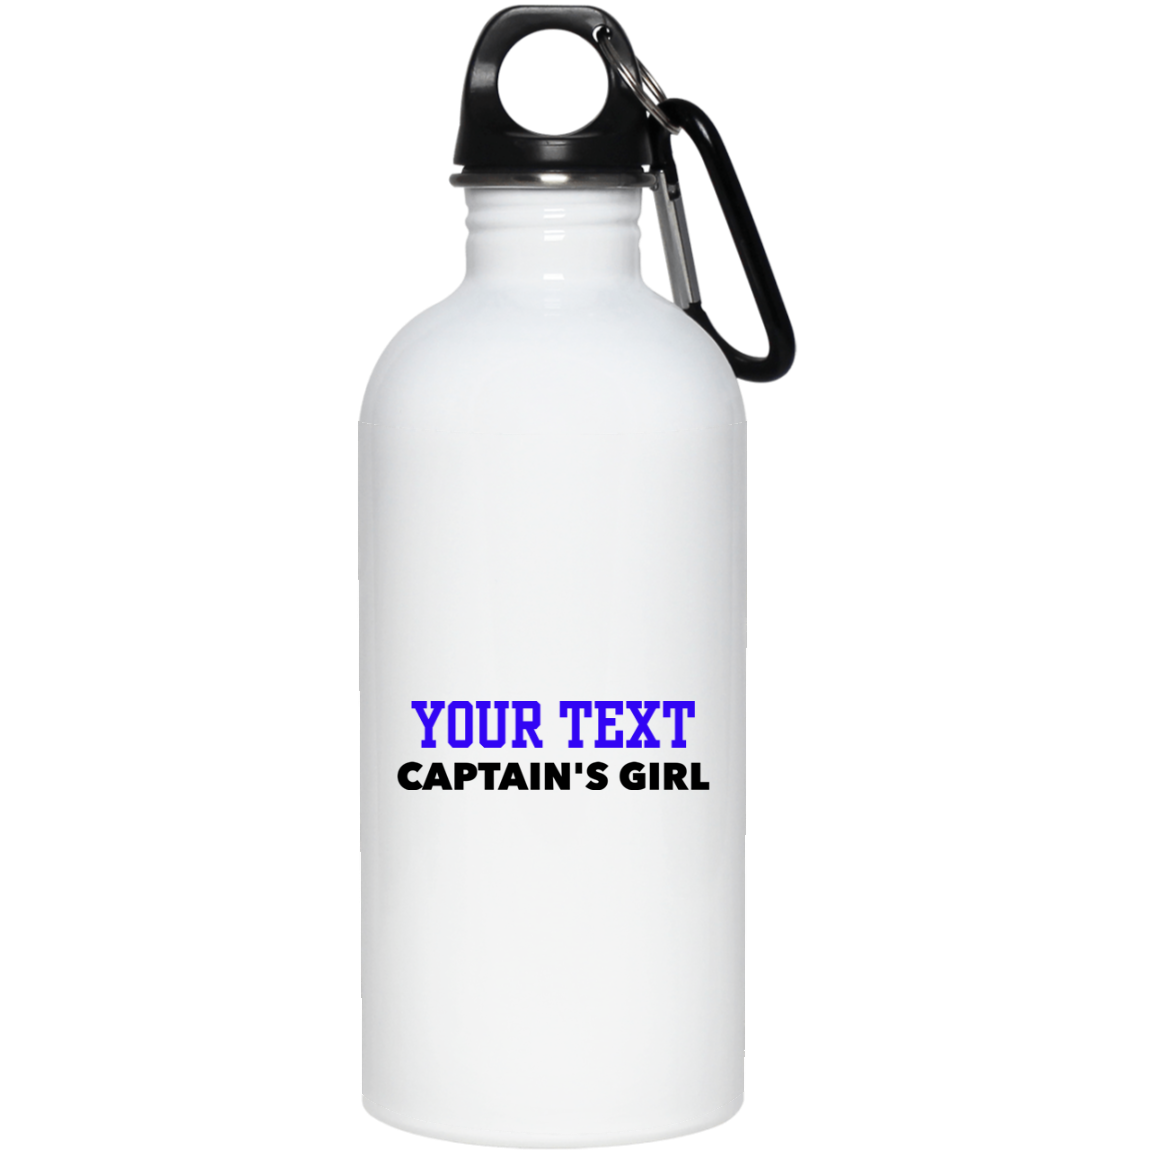 Personalized-Captain's Girl 20 oz. Stainless Steel Water Bottle